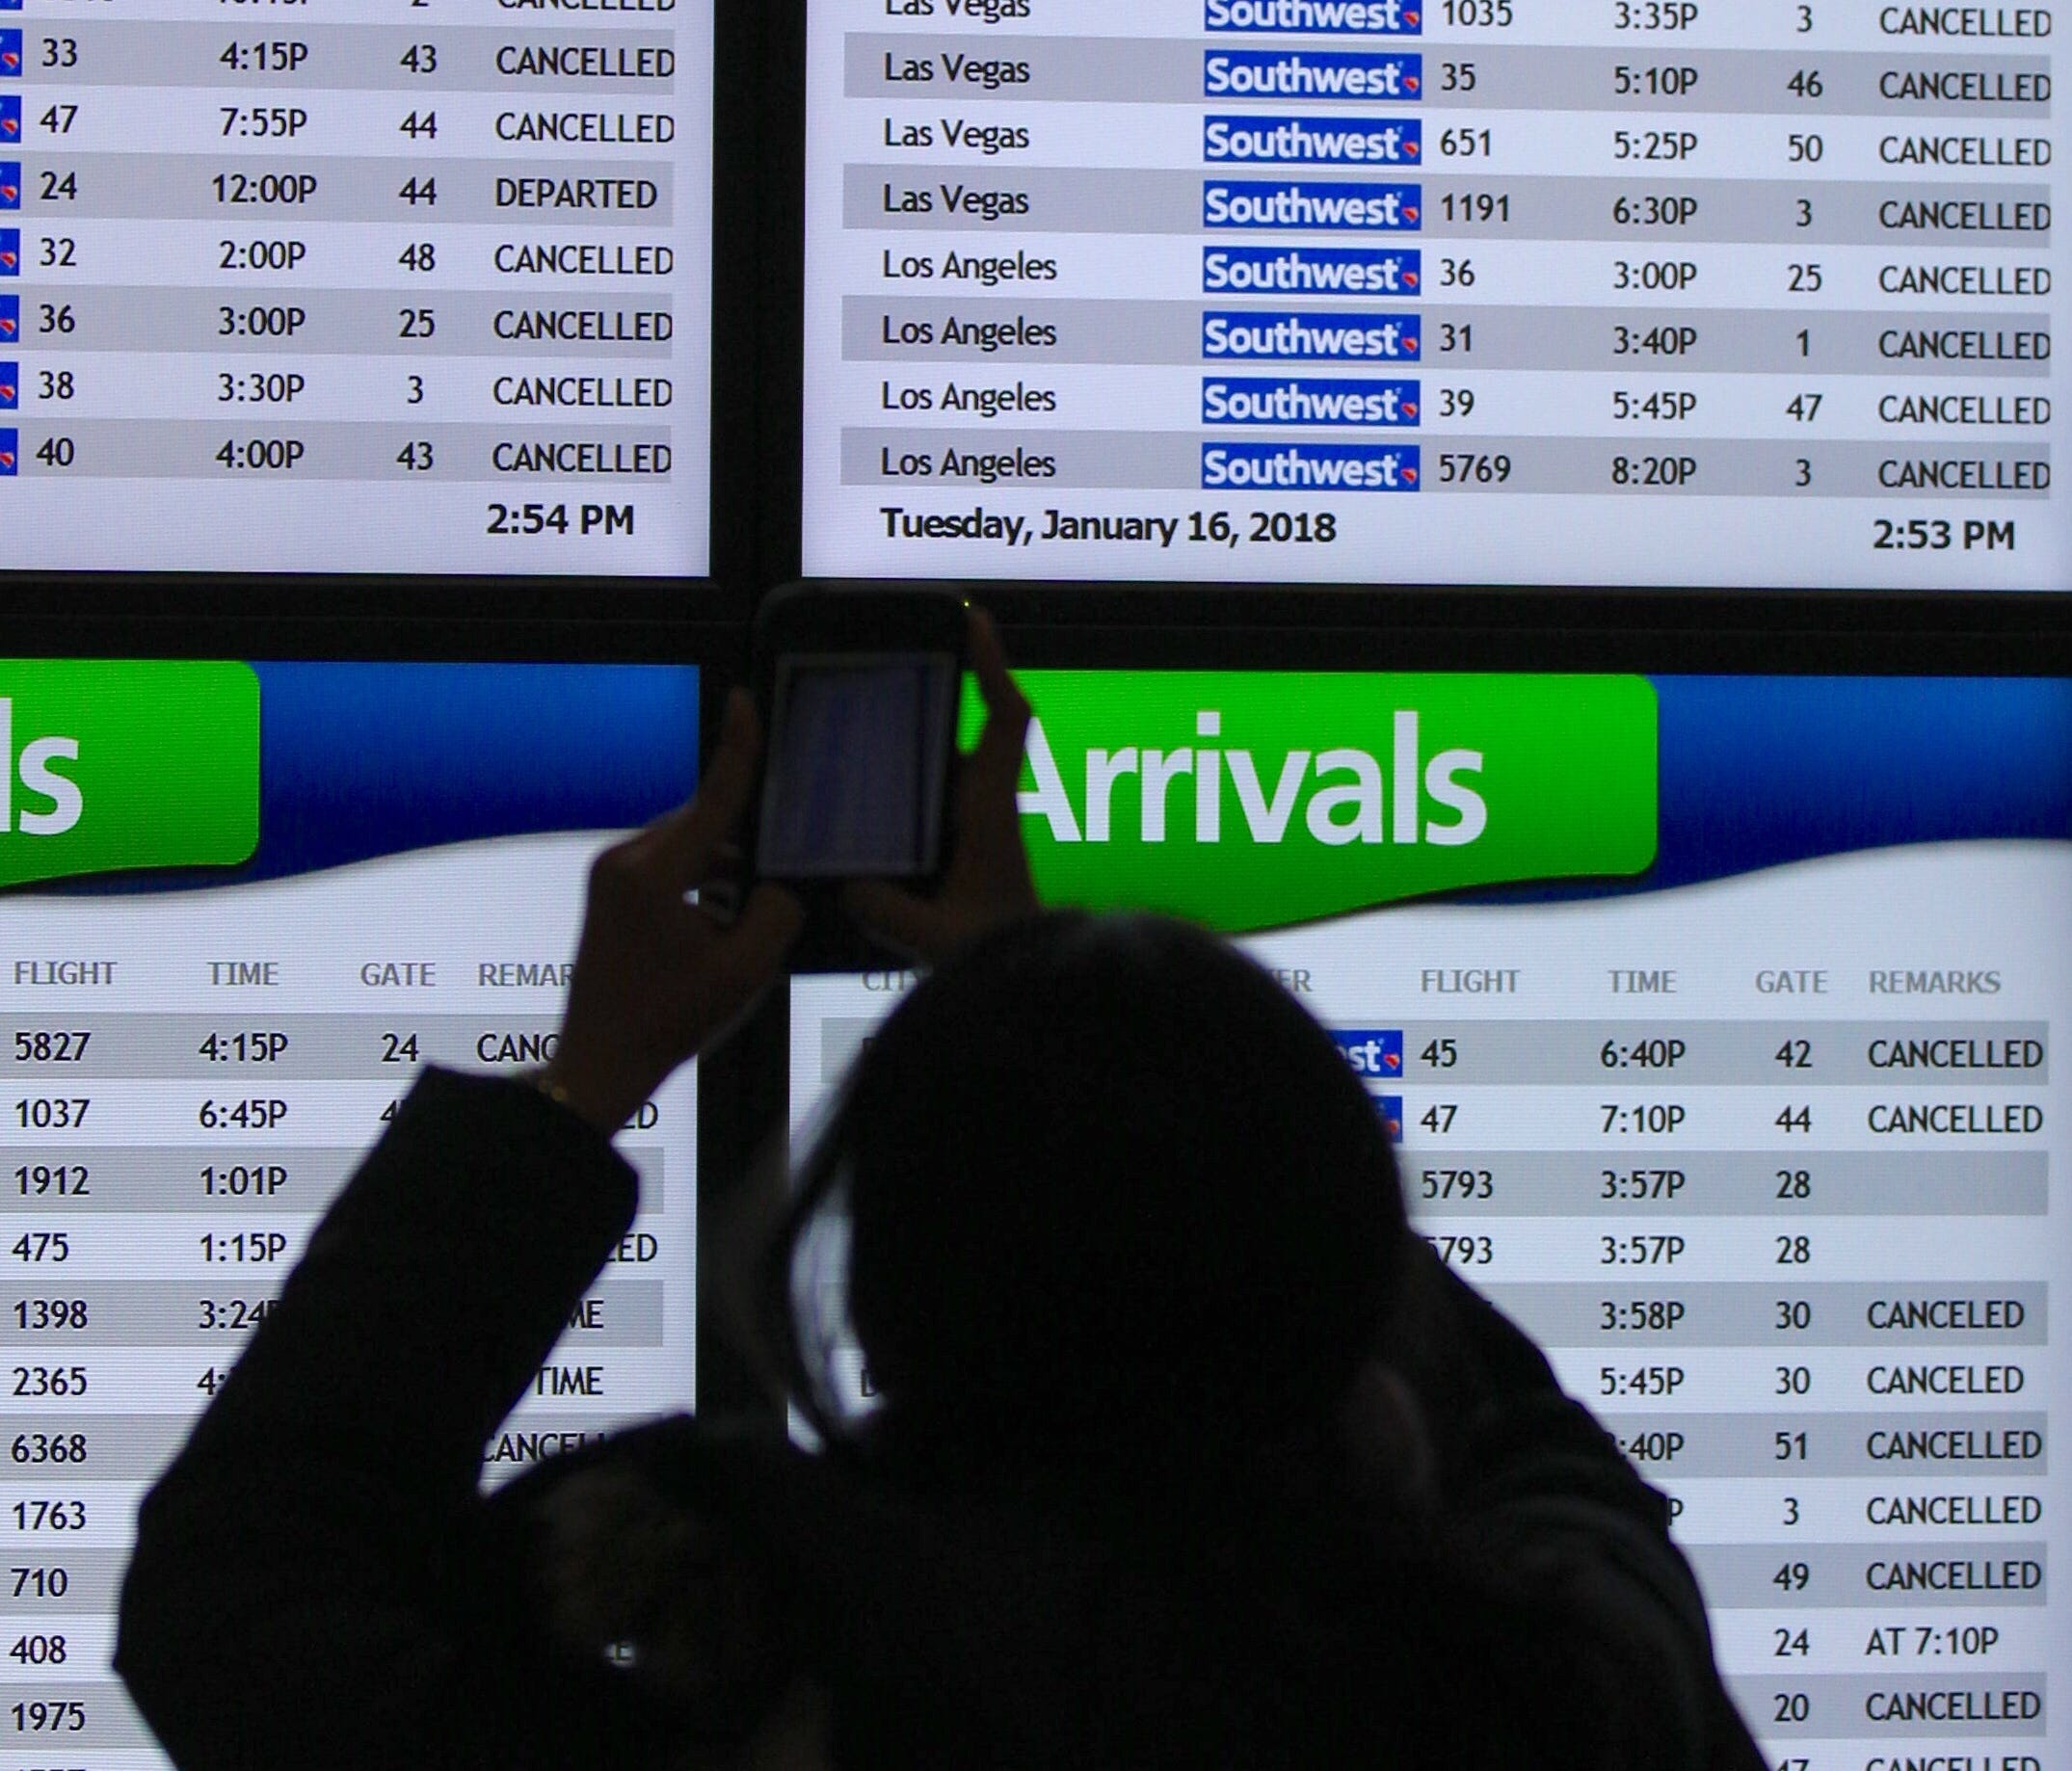 A passenger takes a picture of a flight departure screen that shows mostly canceled flights at Houston Hobby Airport on Tuesday, Jan. 16, 2018. The city was hit by wintry weather.